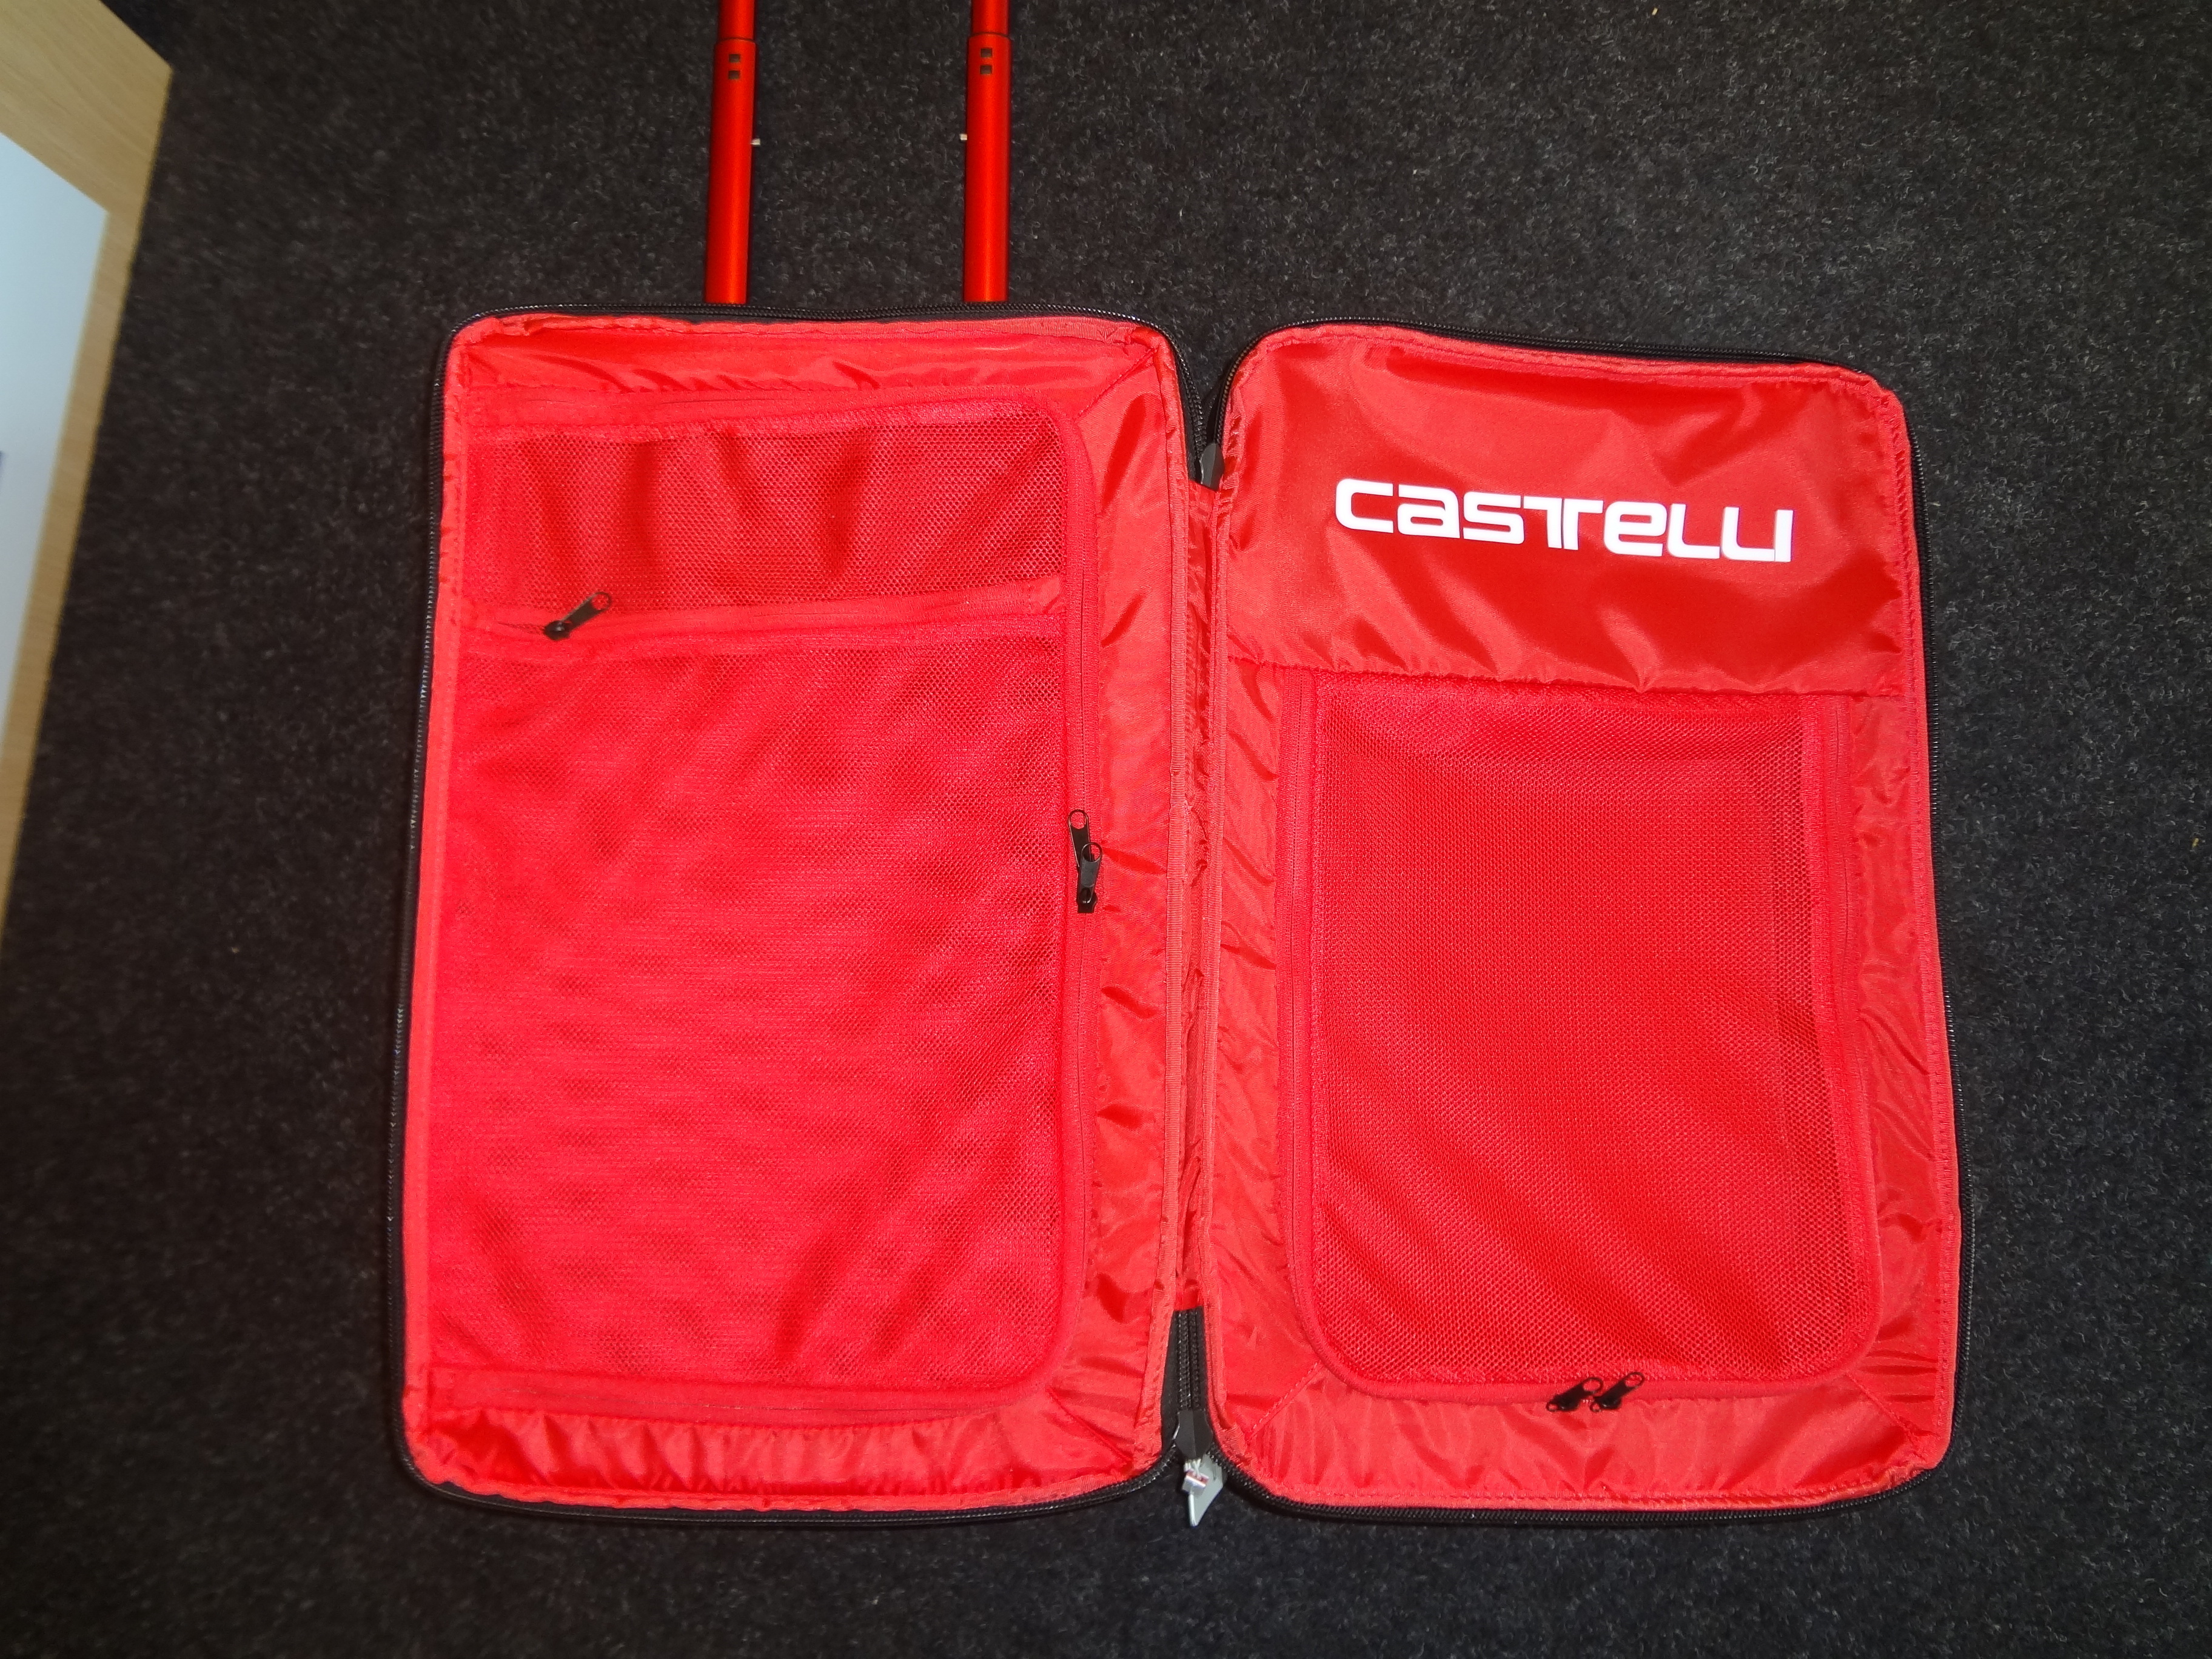 Castelli_Rolling_Travel_Bag_4